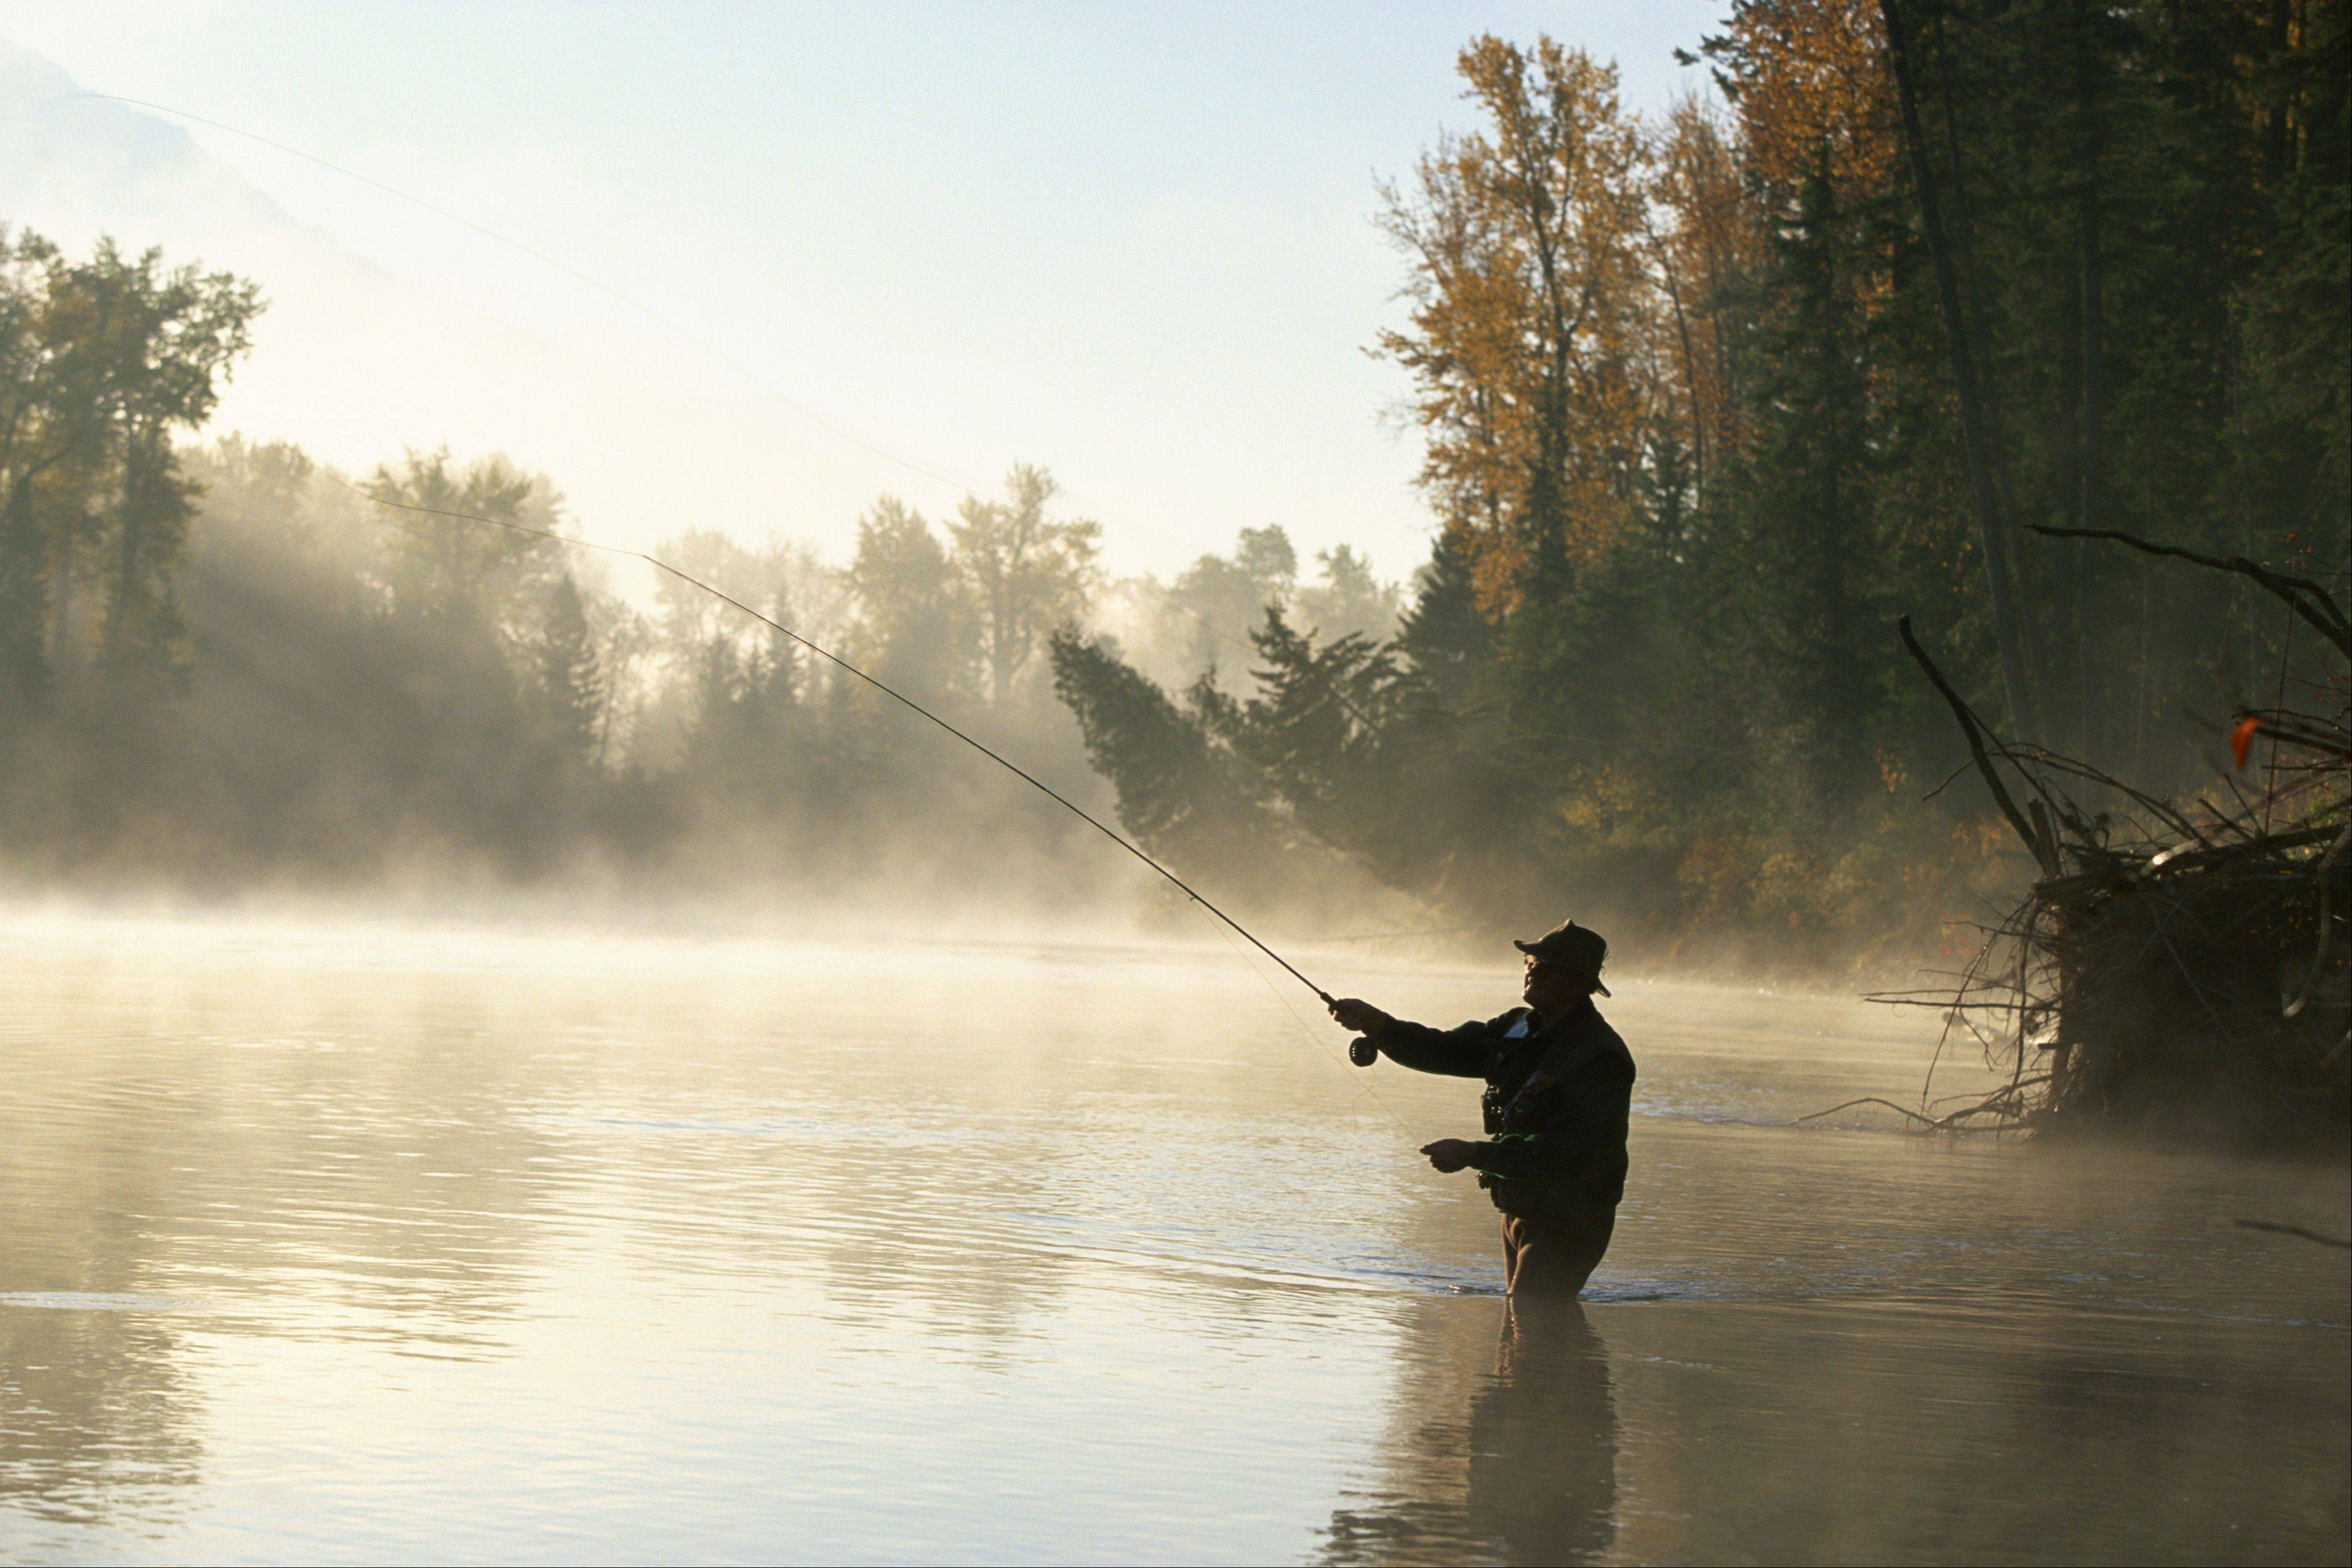 Comstock photosWith spring approaching, it's time for anglers to starting preparing for some fly fishing.